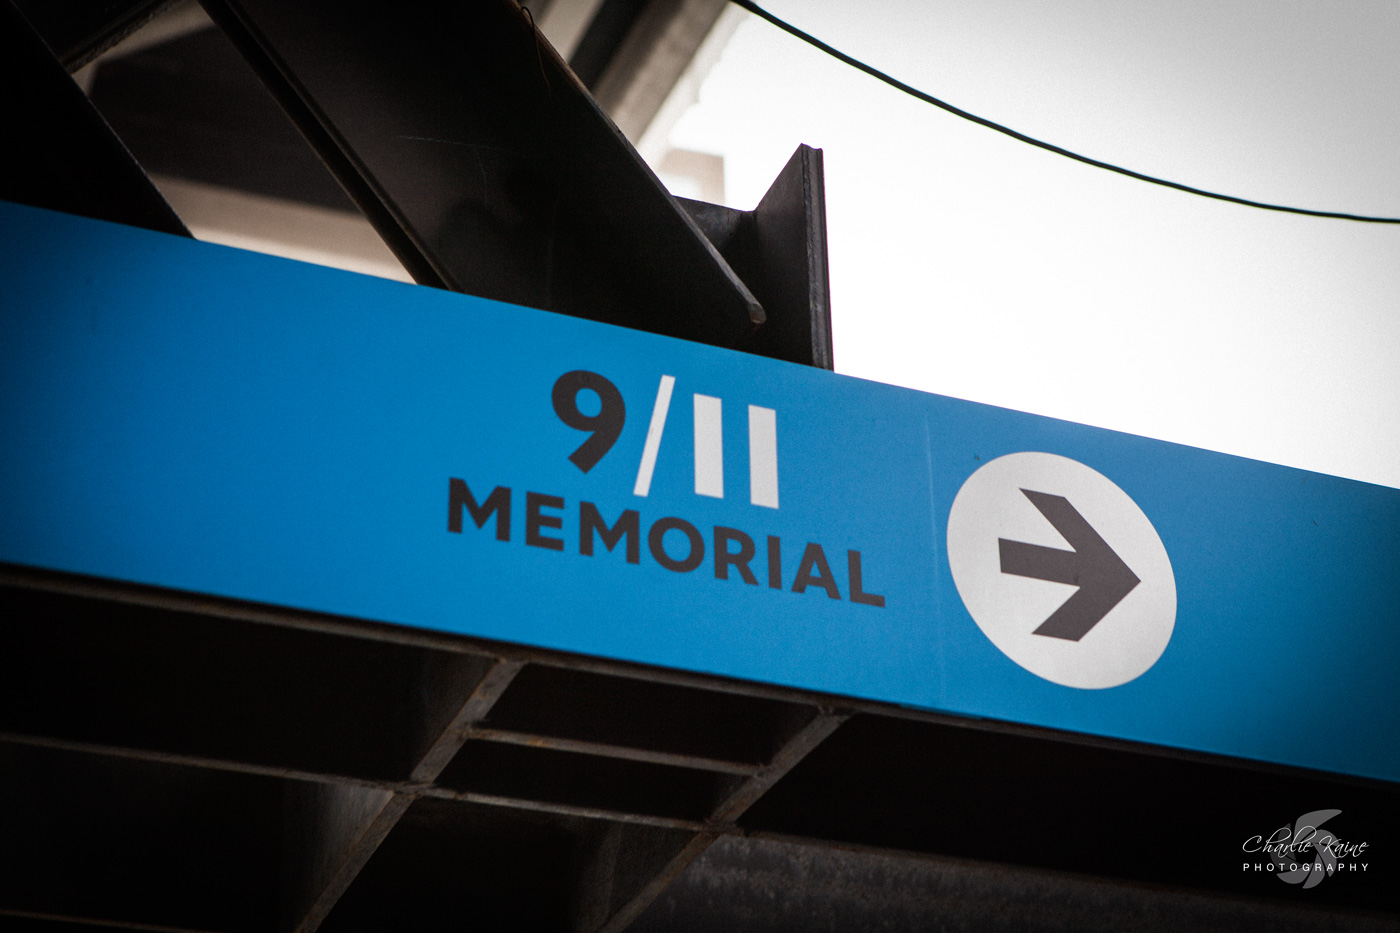 911 Memorial sign | Charlie Kaine Photography